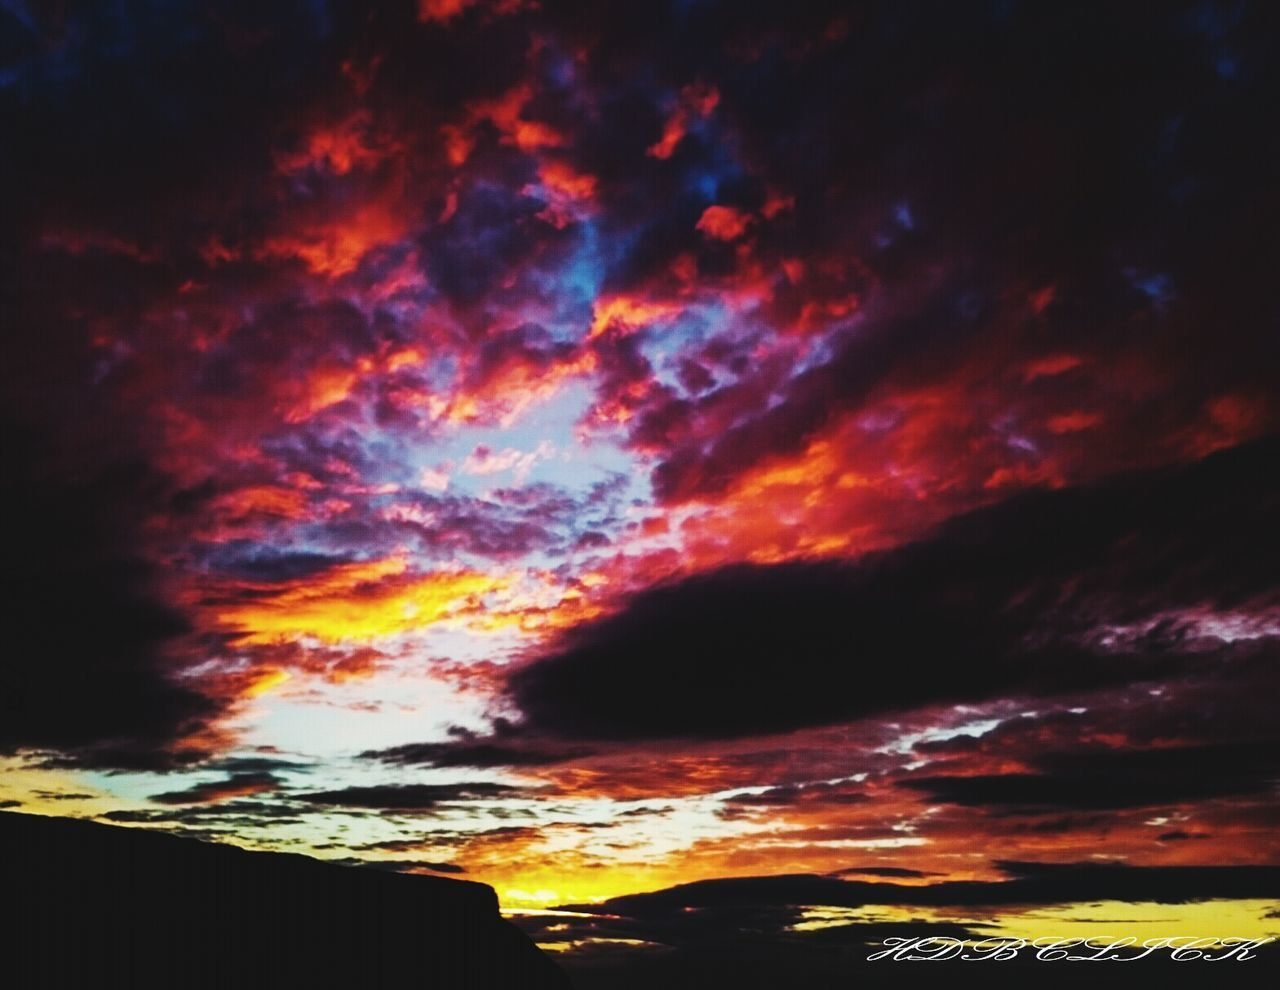 sunset, beauty in nature, scenics, nature, sky, cloud - sky, dramatic sky, tranquil scene, tranquility, no people, outdoors, silhouette, awe, low angle view, multi colored, night